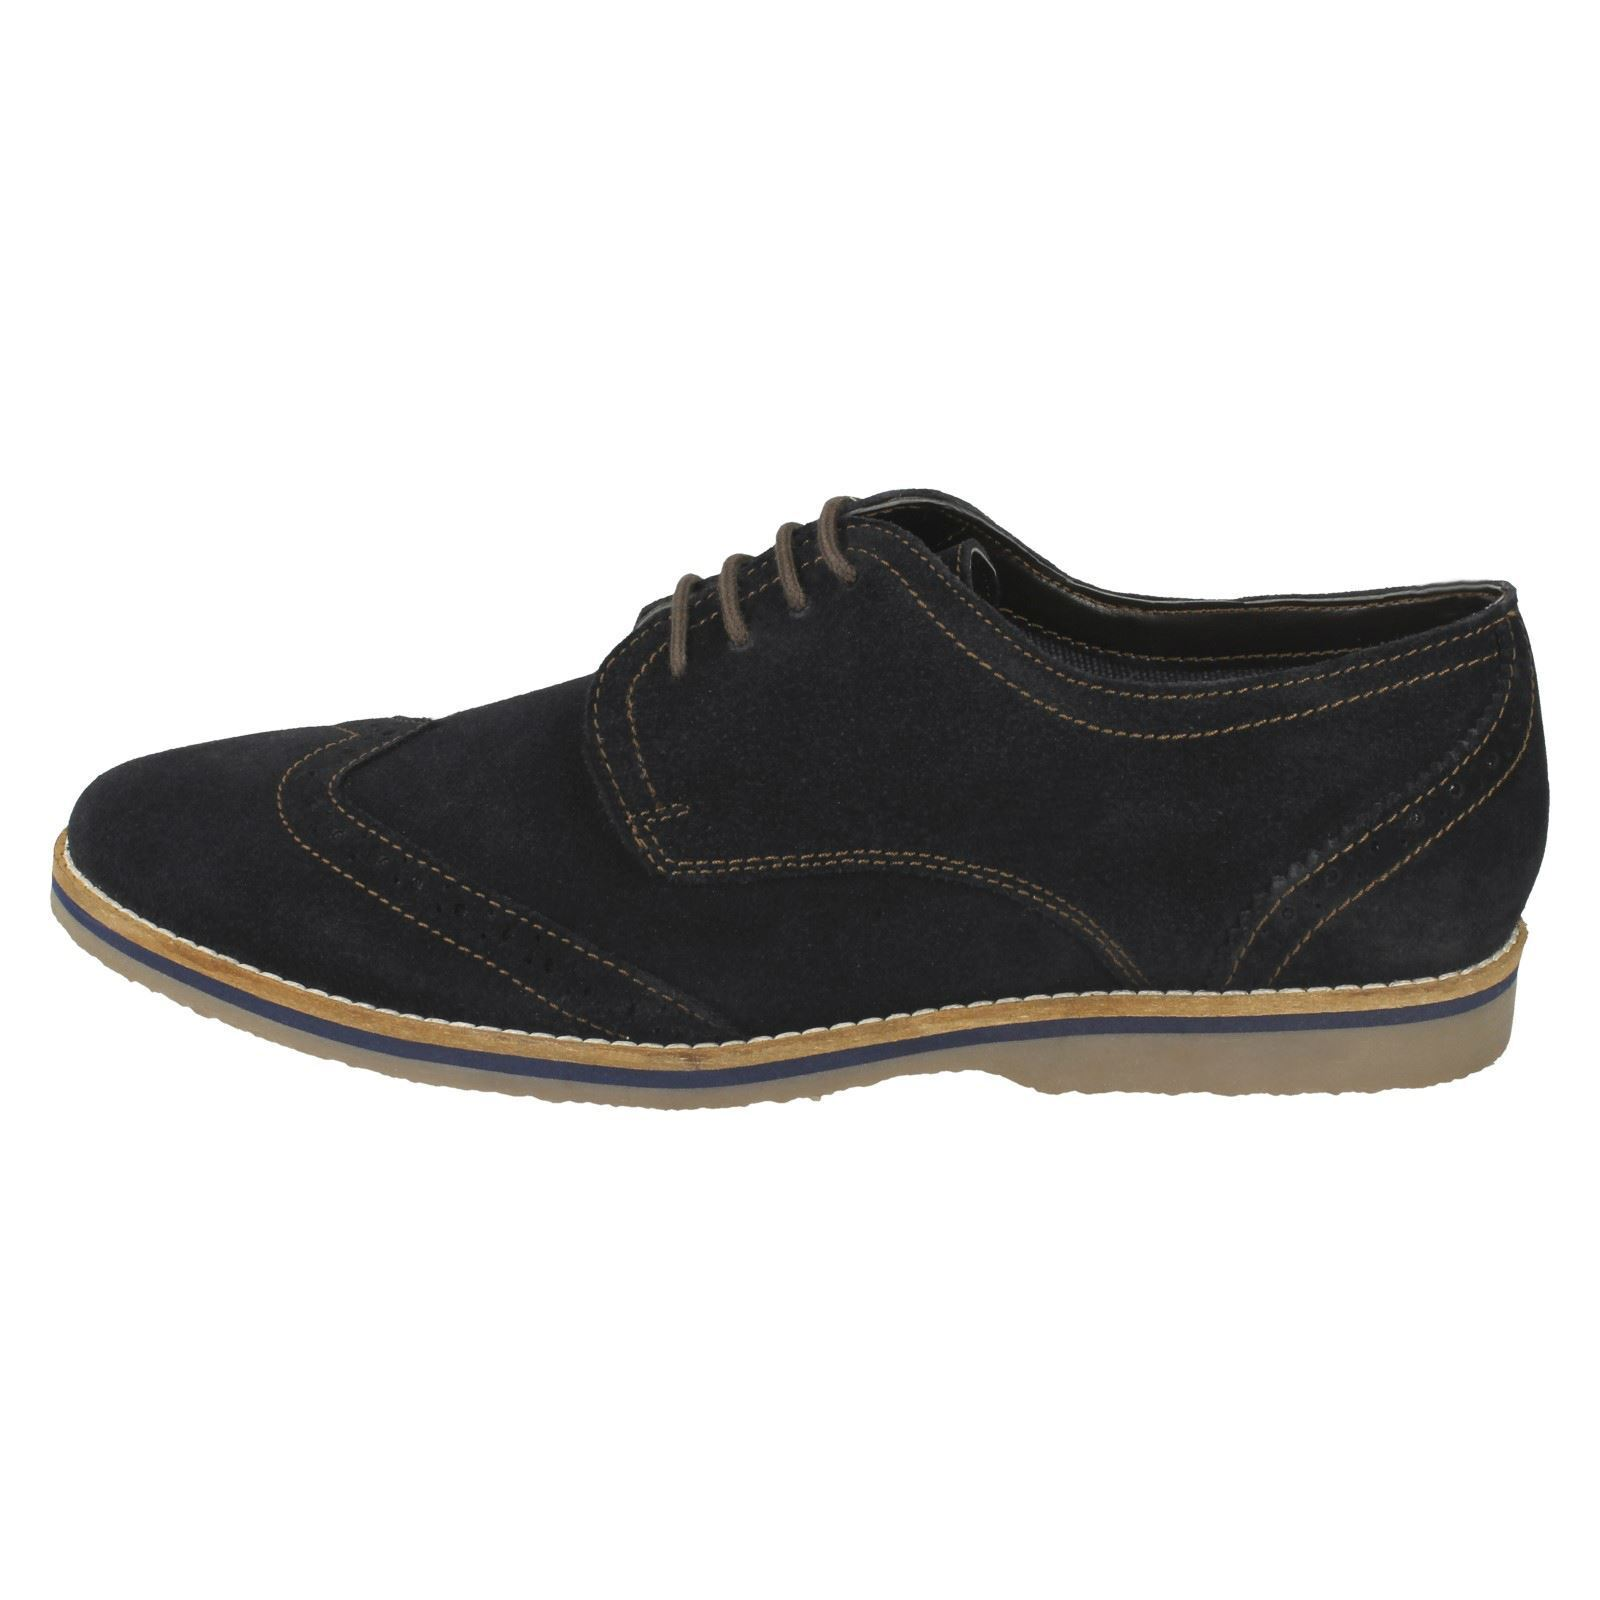 Uomo Navy Suede Leder Puppies Lace Up Brogue Hush Puppies Leder Schuhes Sebastian Wing Tip e65cc6